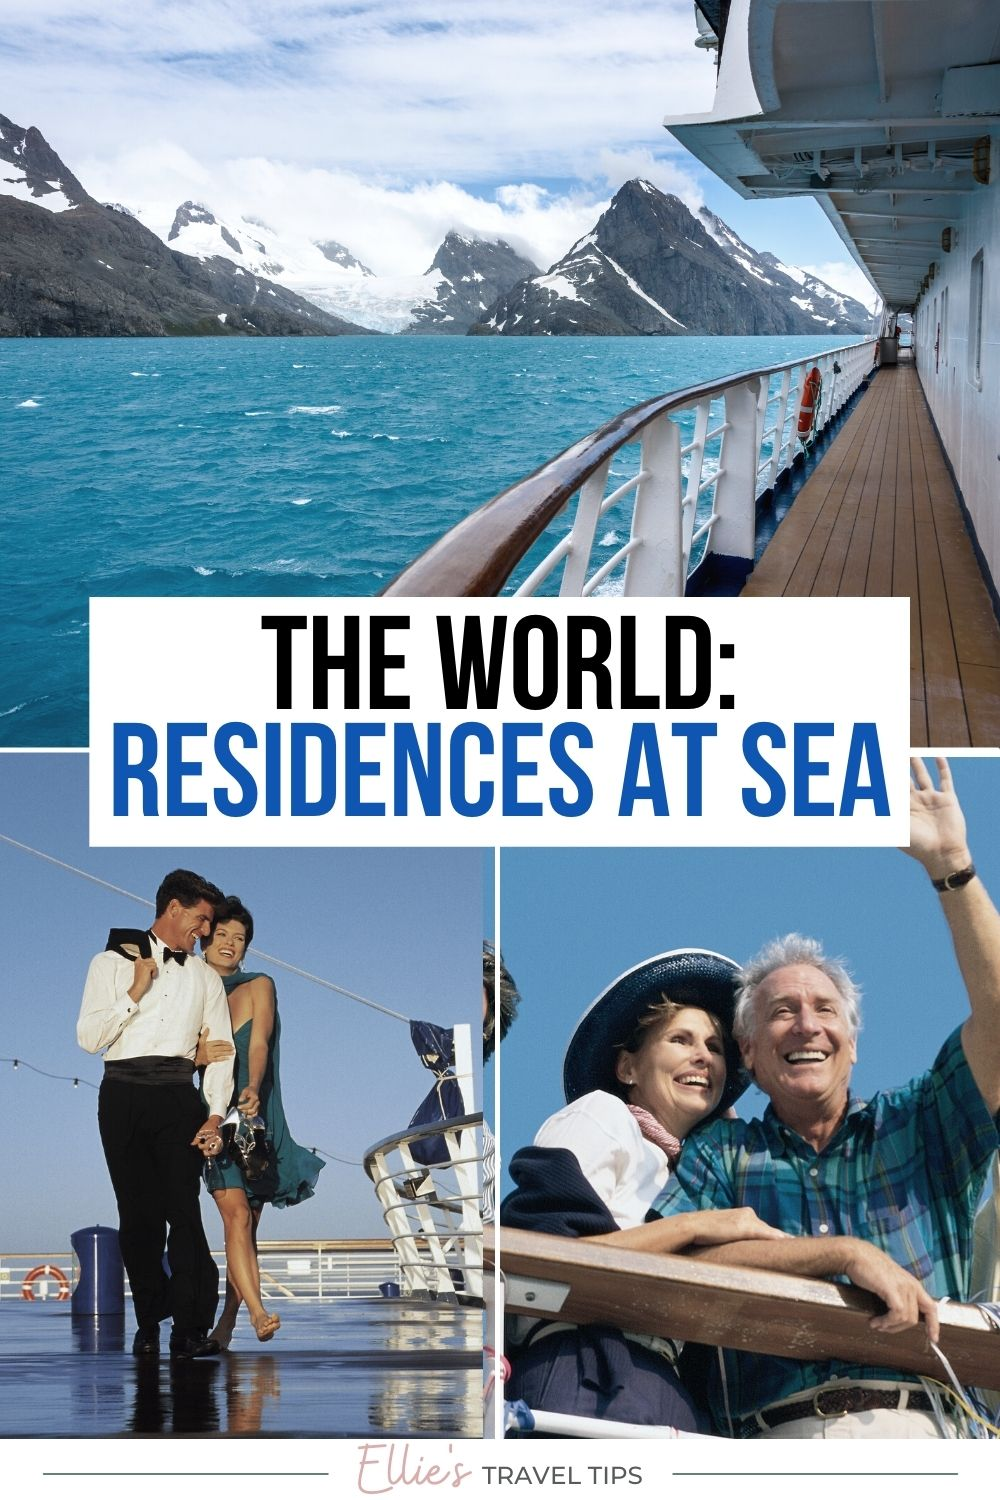 The World Residences at Sea (1)